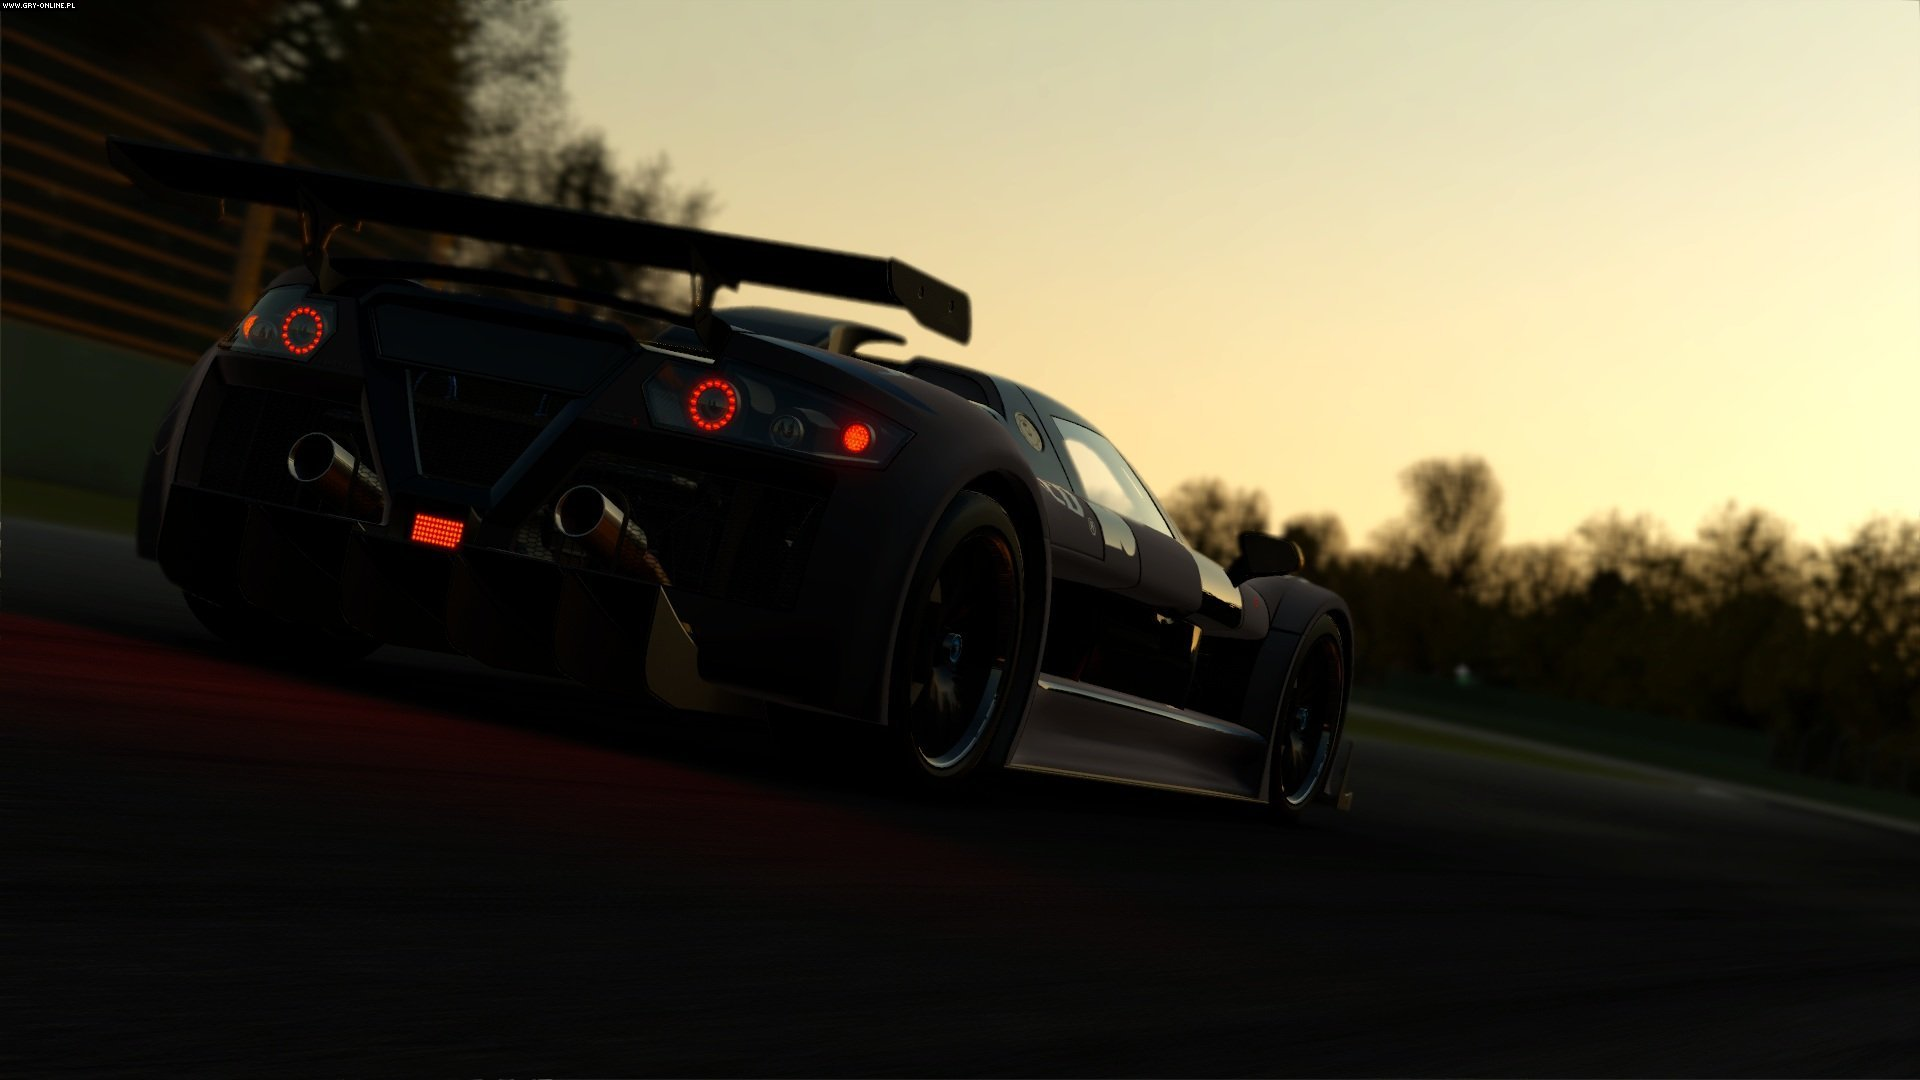 Project Cars Hd Wallpaper Background Image 1920x1080 Id